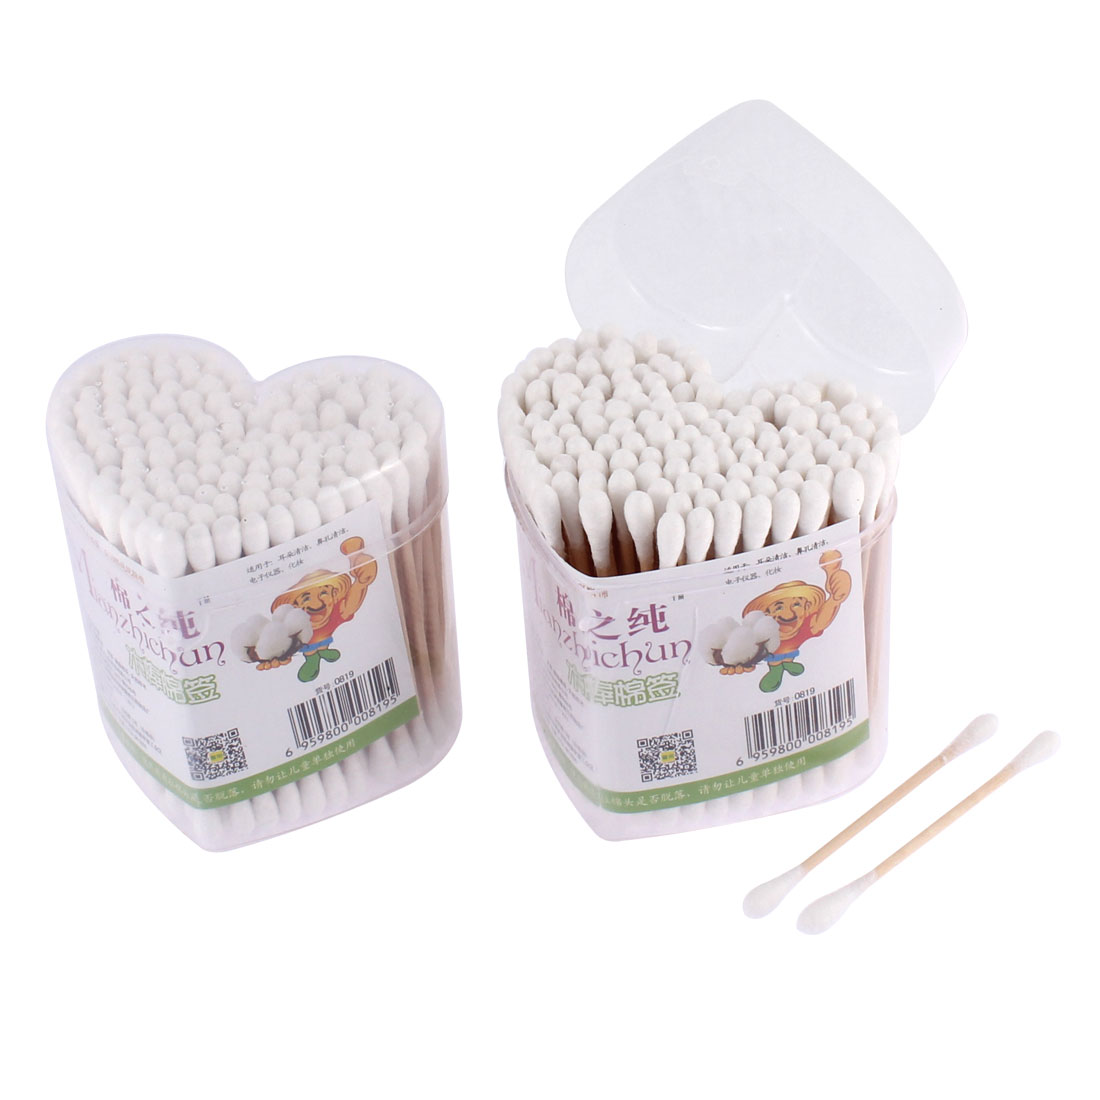 320Pcs Double End Ear Wax Remover Picks Cotton Swabs Bud Cosmetic Tool